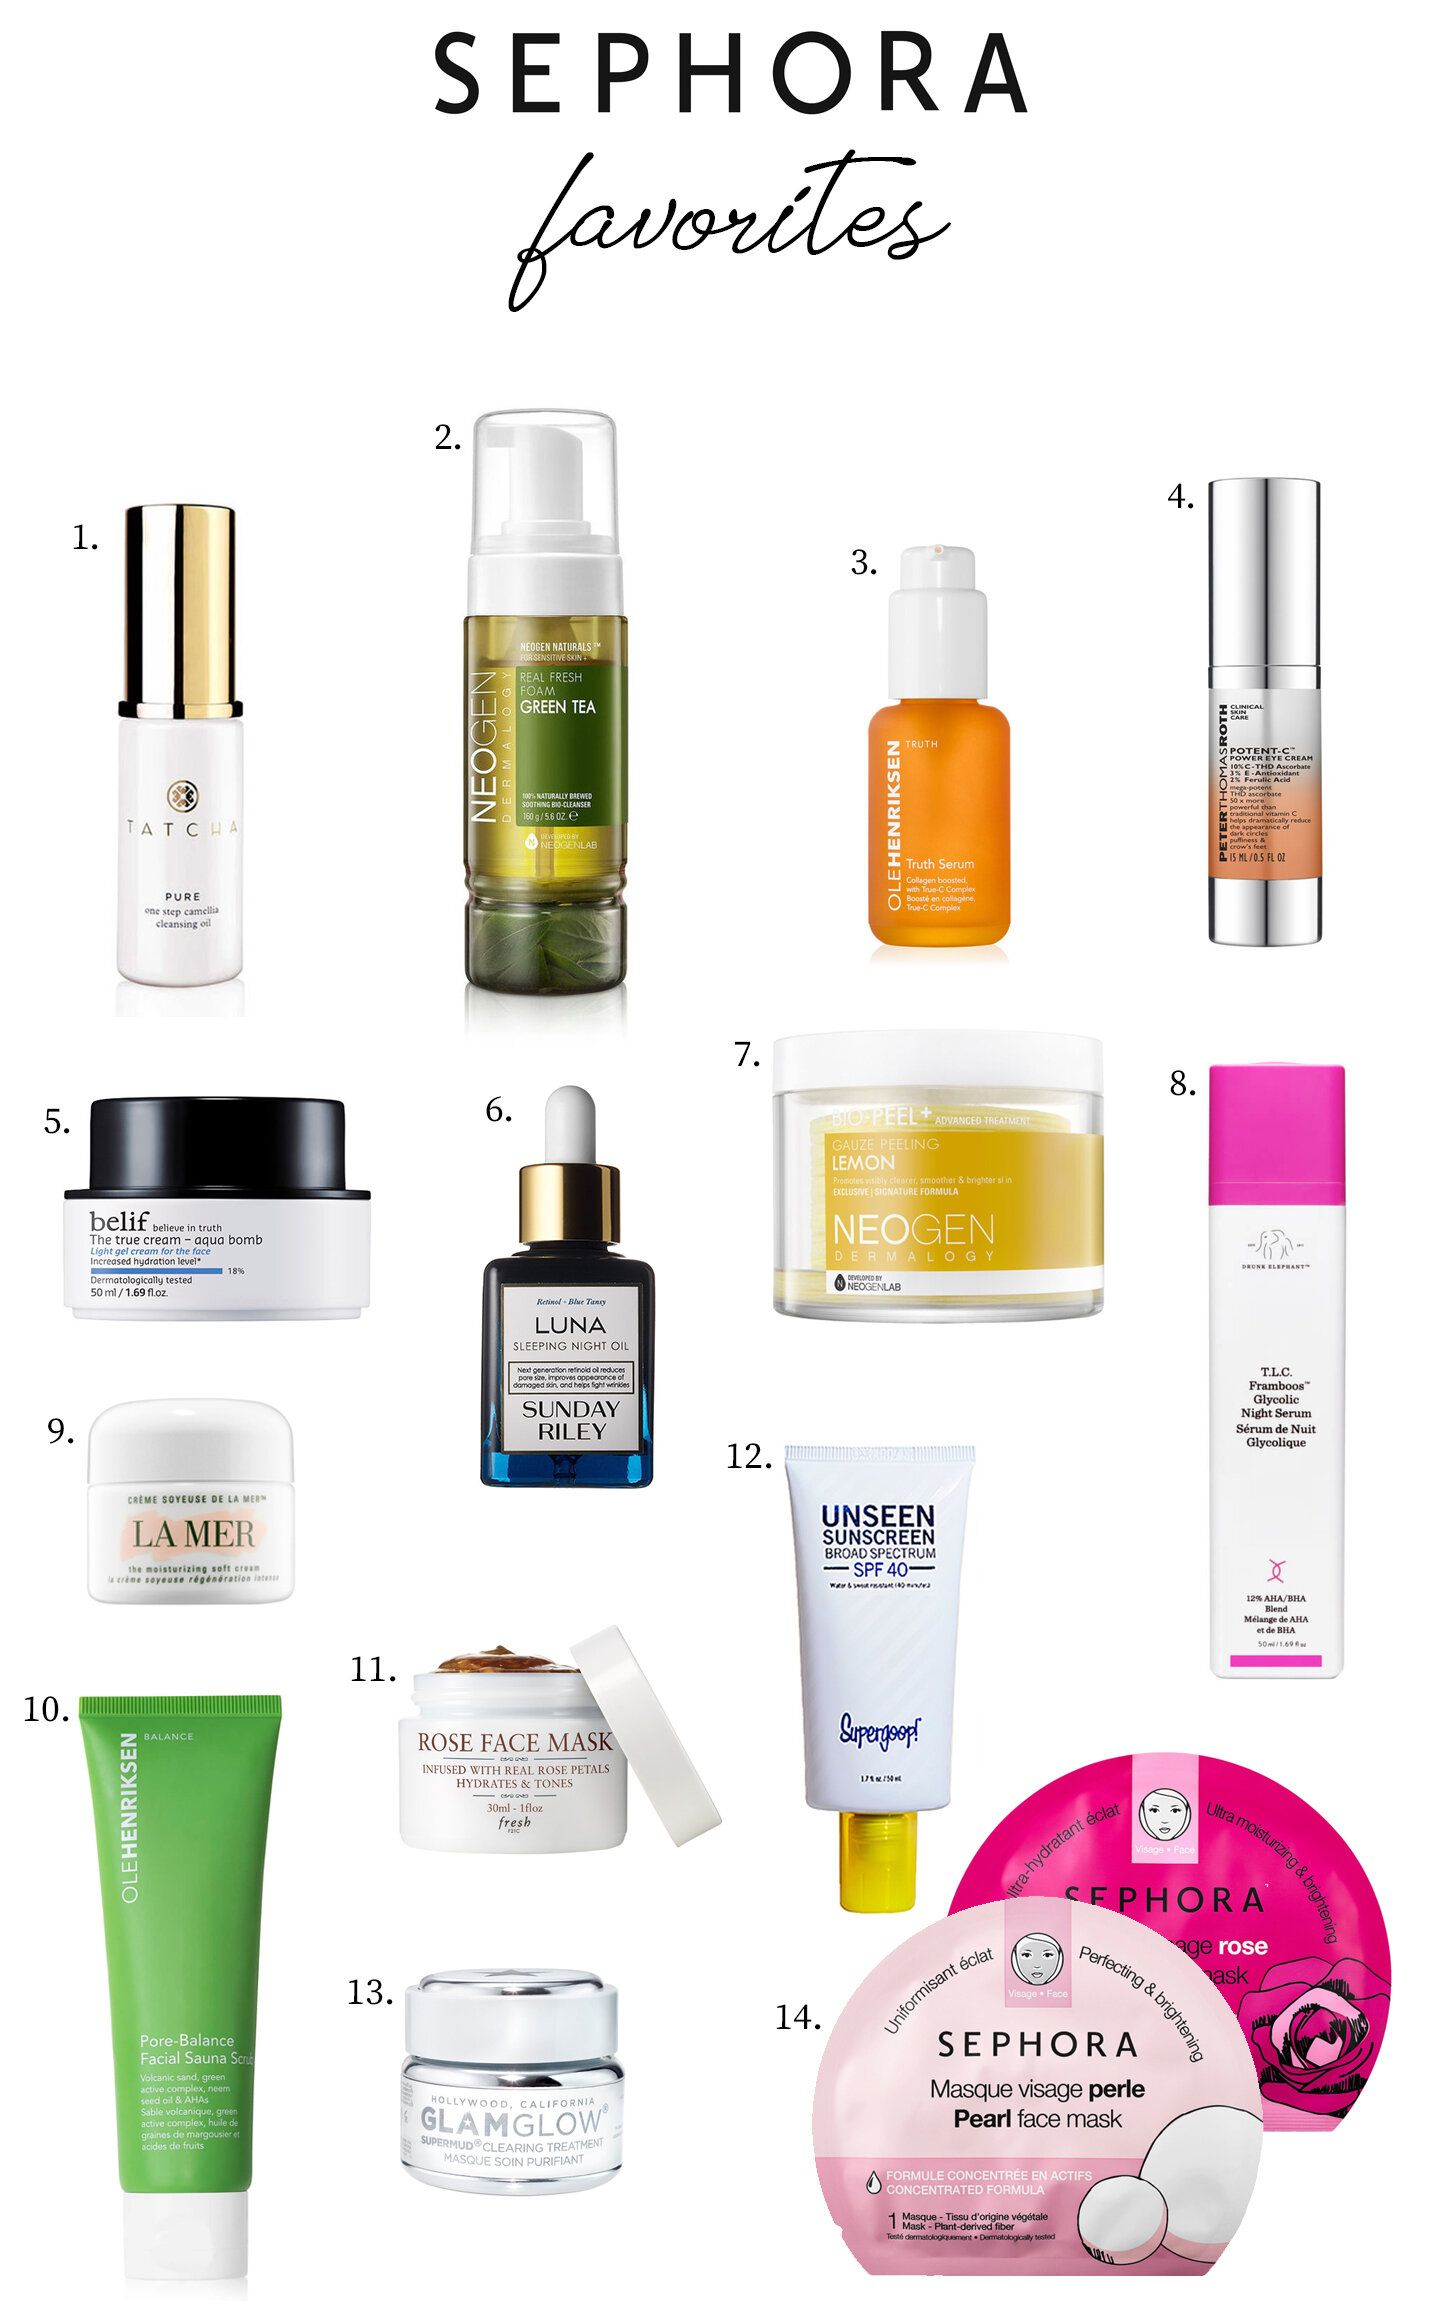 My Favorite Products From Sephora Created By Fortune In 2020 Sephora Skin Care Sephora Best Sephora Products